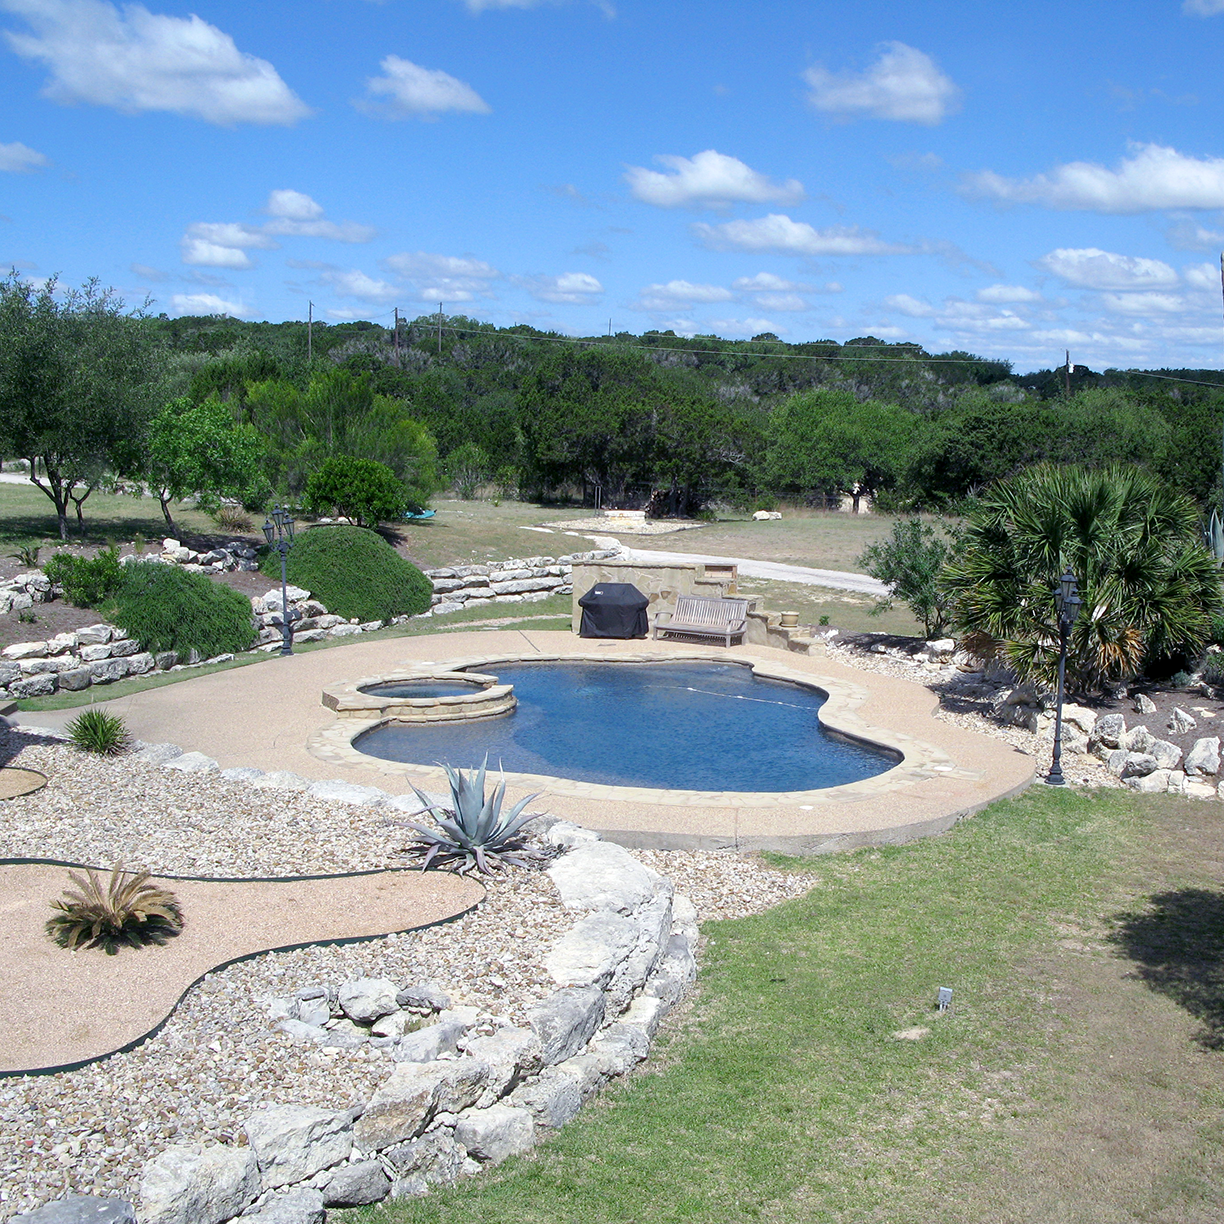 View-of-Pool-1224x1224.png